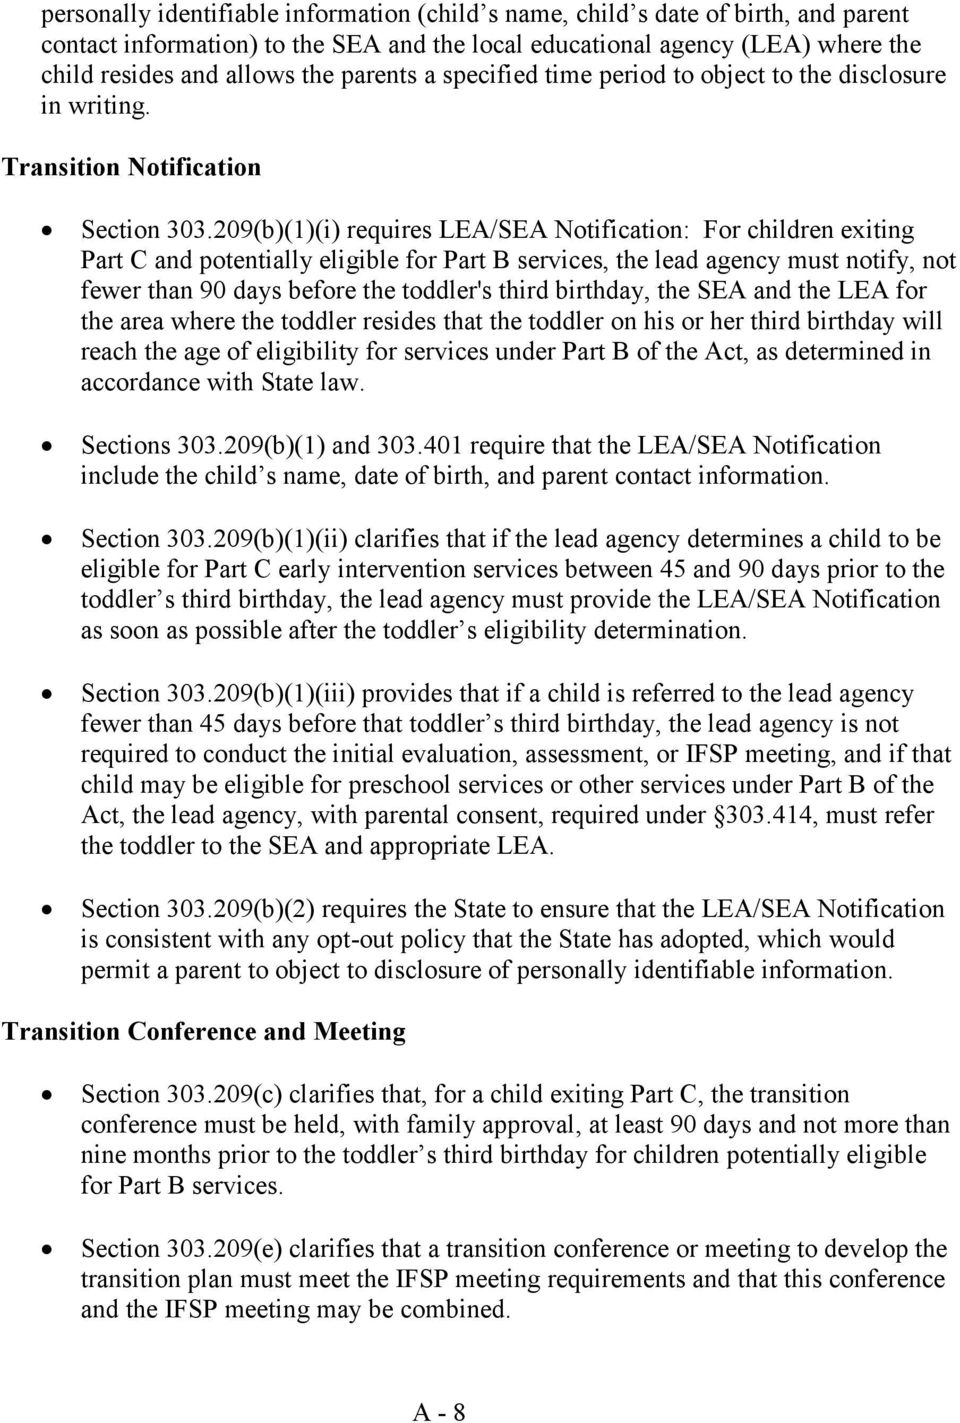 209(b)(1)(i) requires LEA/SEA Notification: For children exiting Part C and potentially eligible for Part B services, the lead agency must notify, not fewer than 90 days before the toddler's third